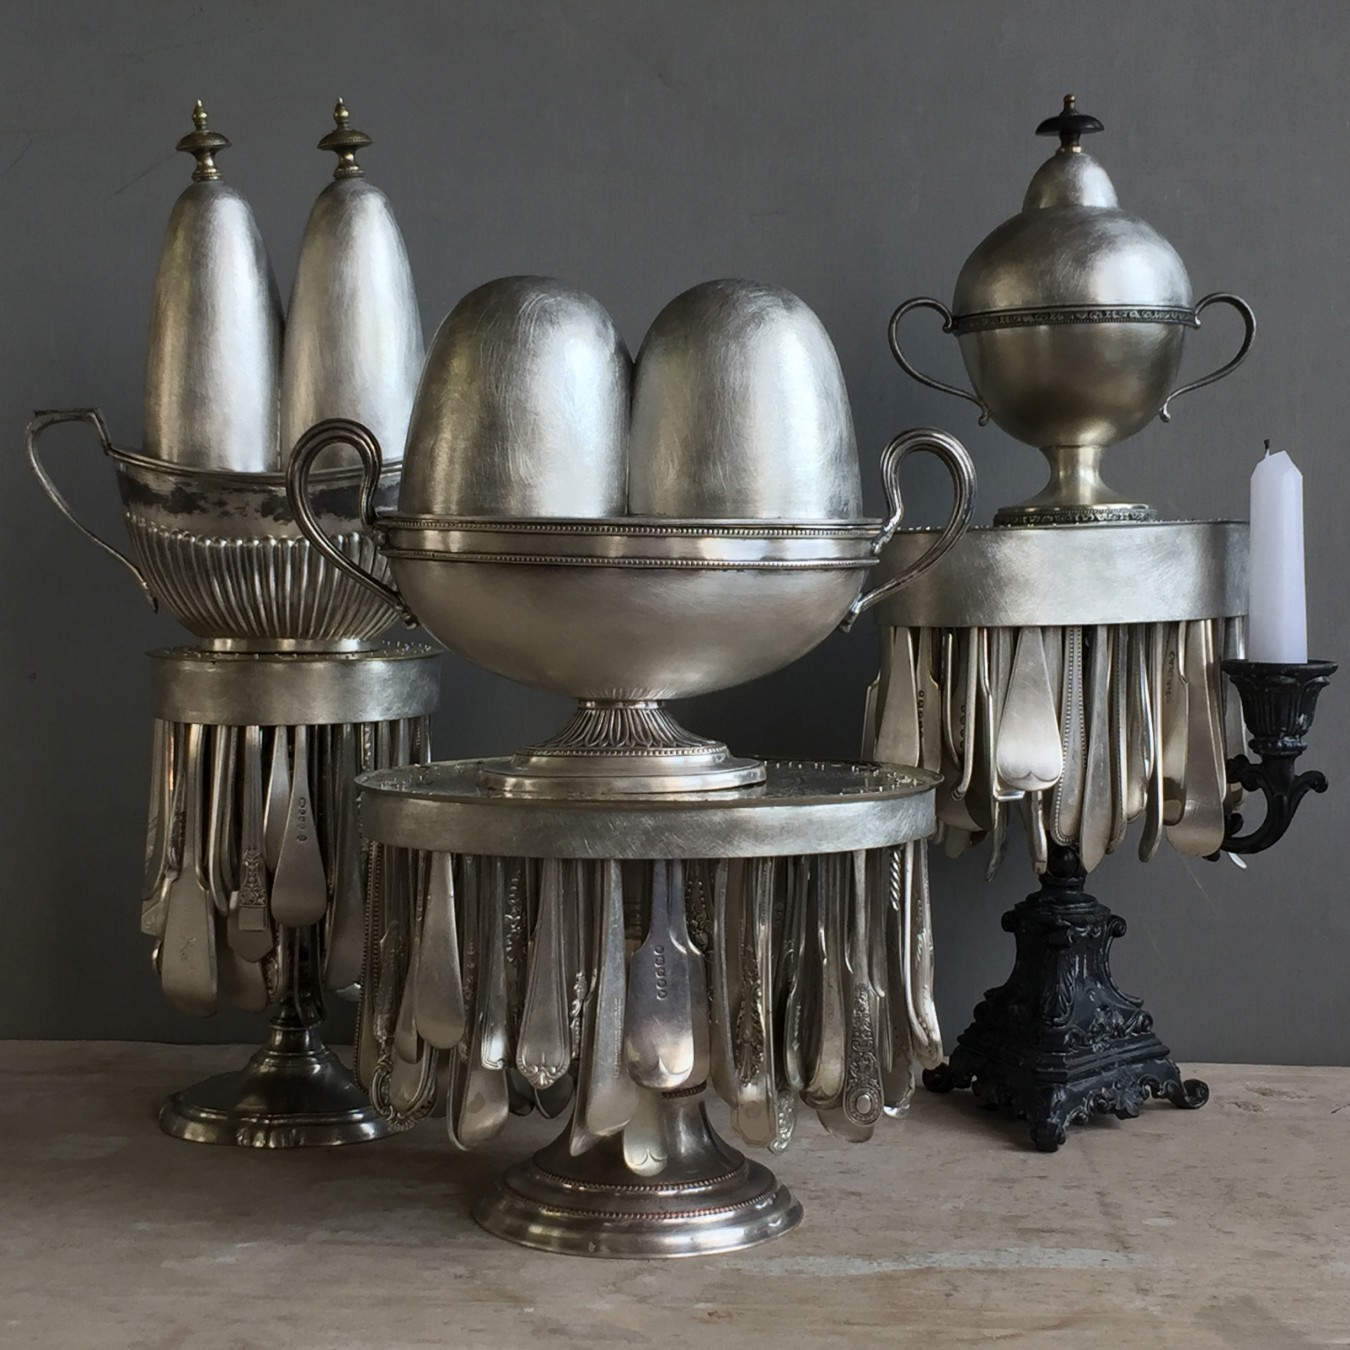 Image of 3 treasure boxes on stands. Using old candlesticks as bases, cutlery handles added as fringes that move. Old sugar bowl included and each given crazy lids that are historically dull and boring.